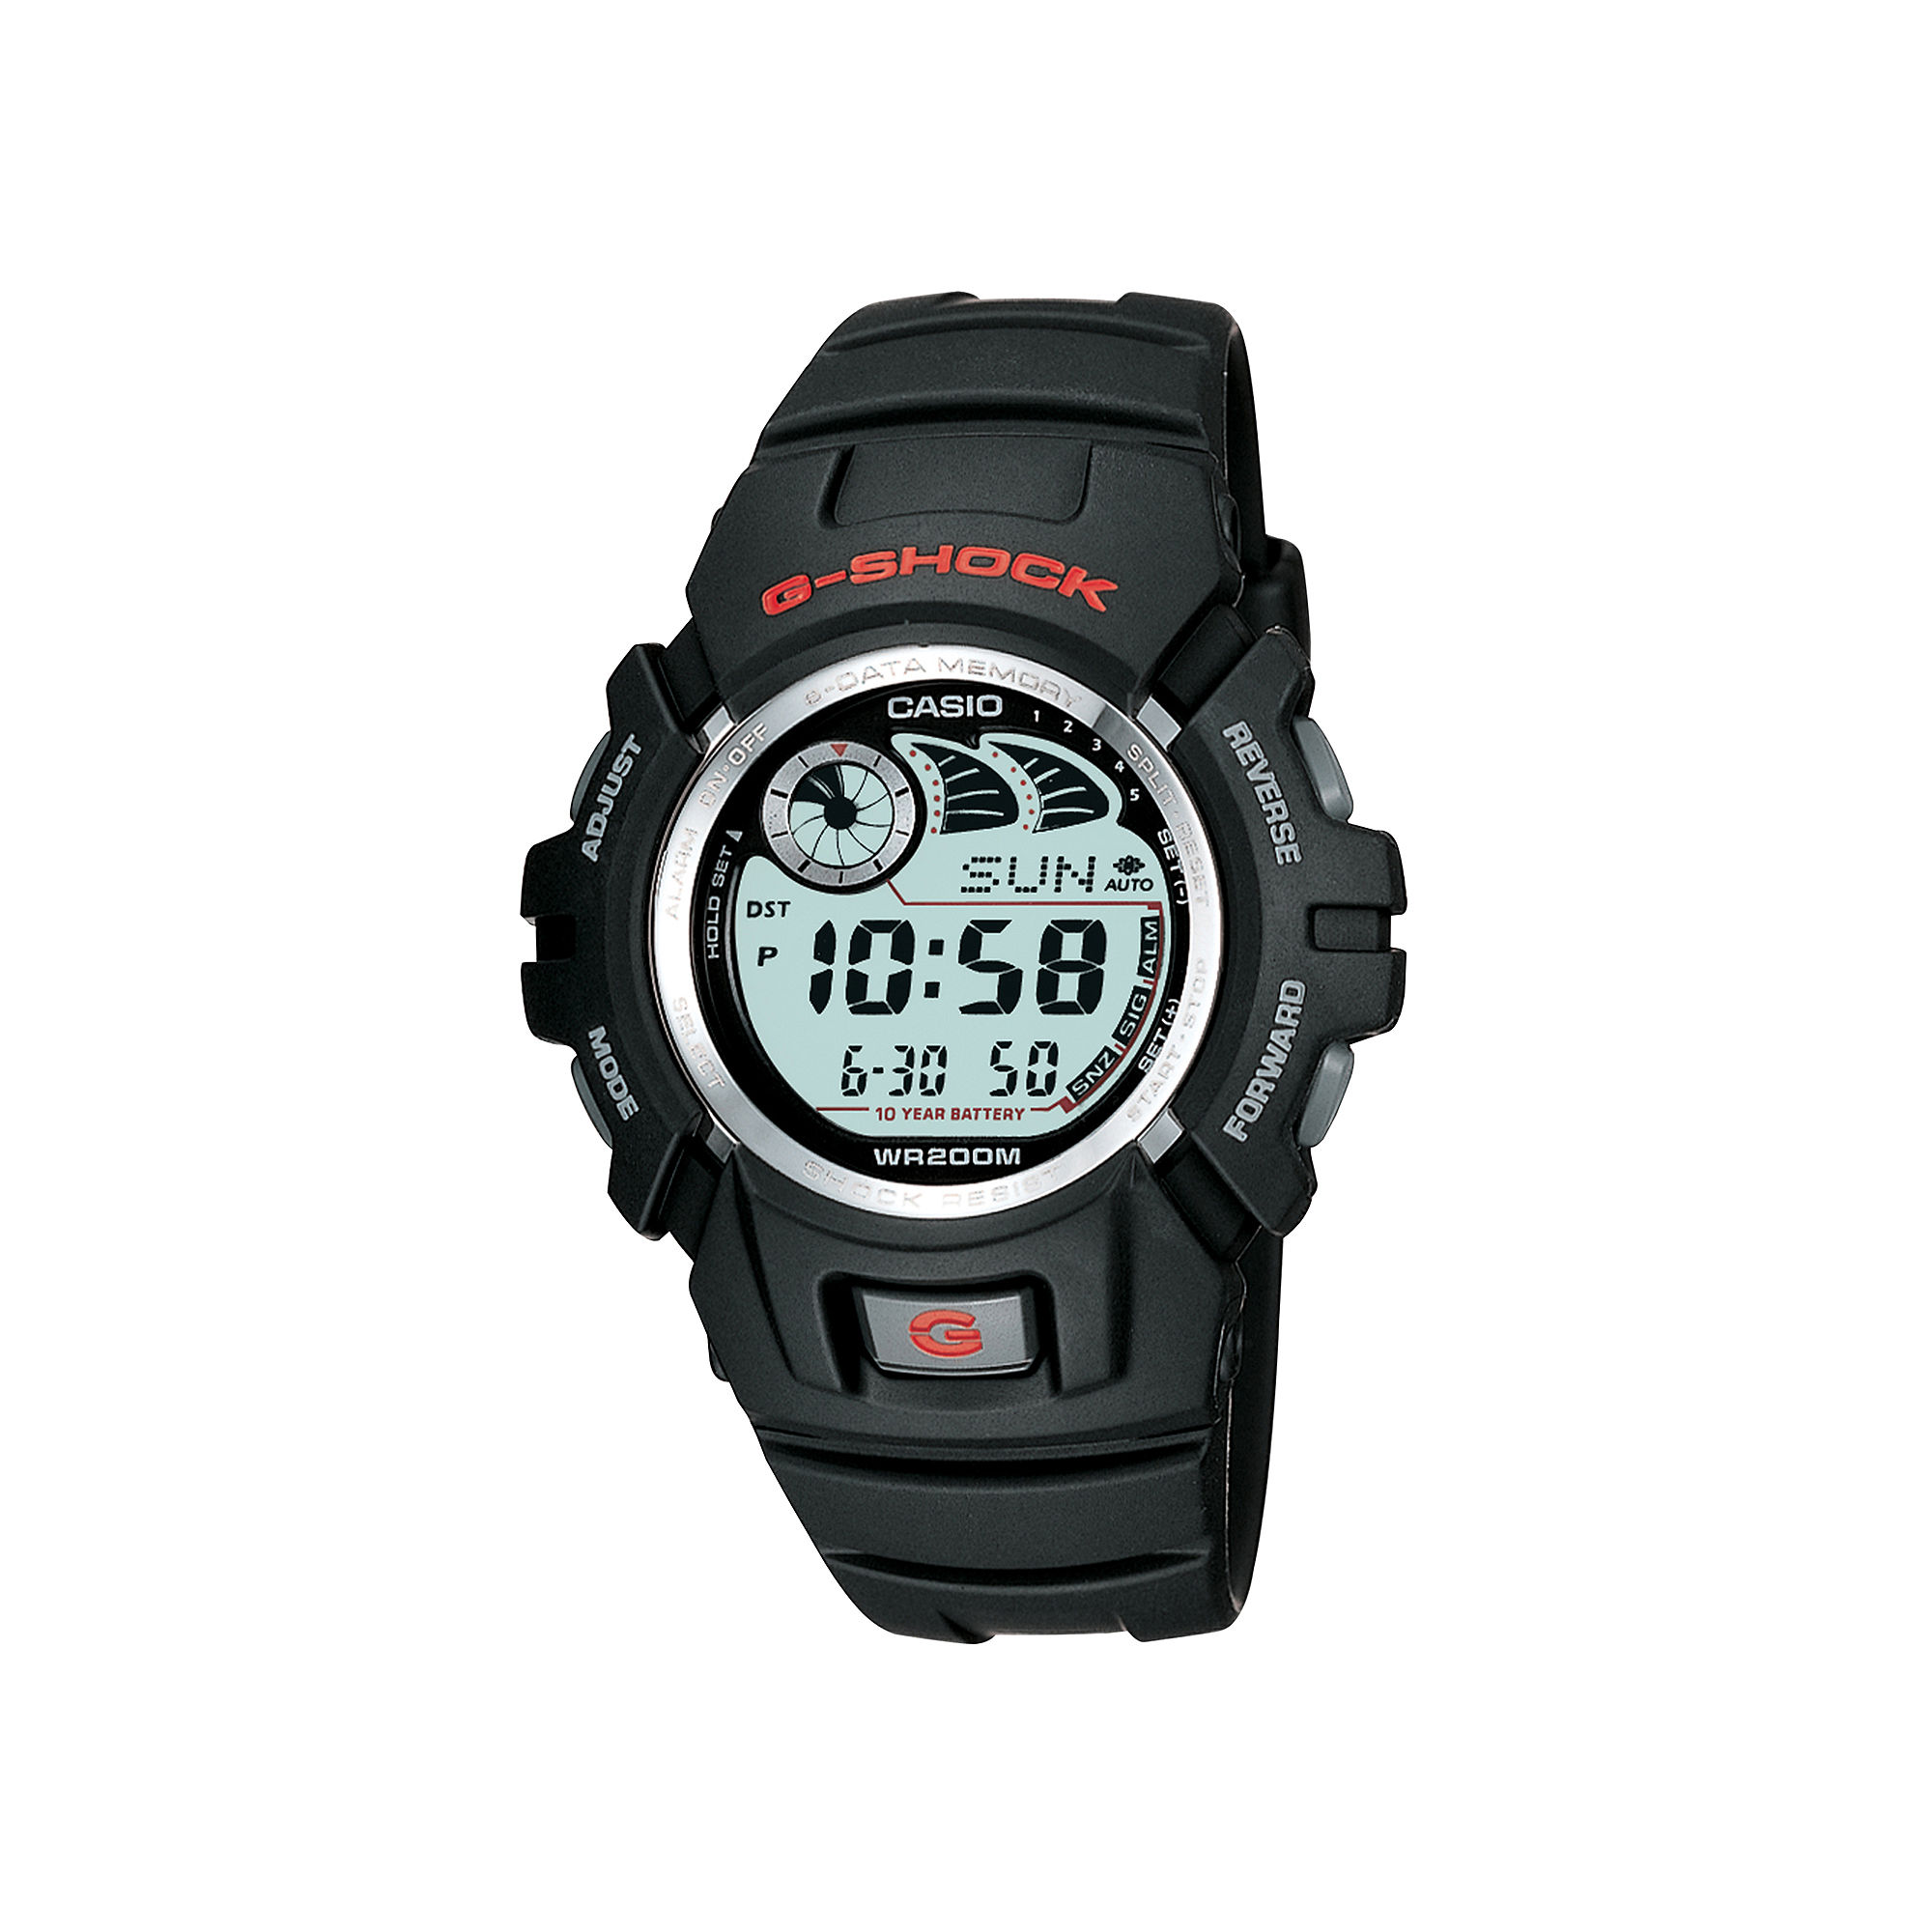 Casio G-Shock Mens E-Data Digital Watch G2900F-1V